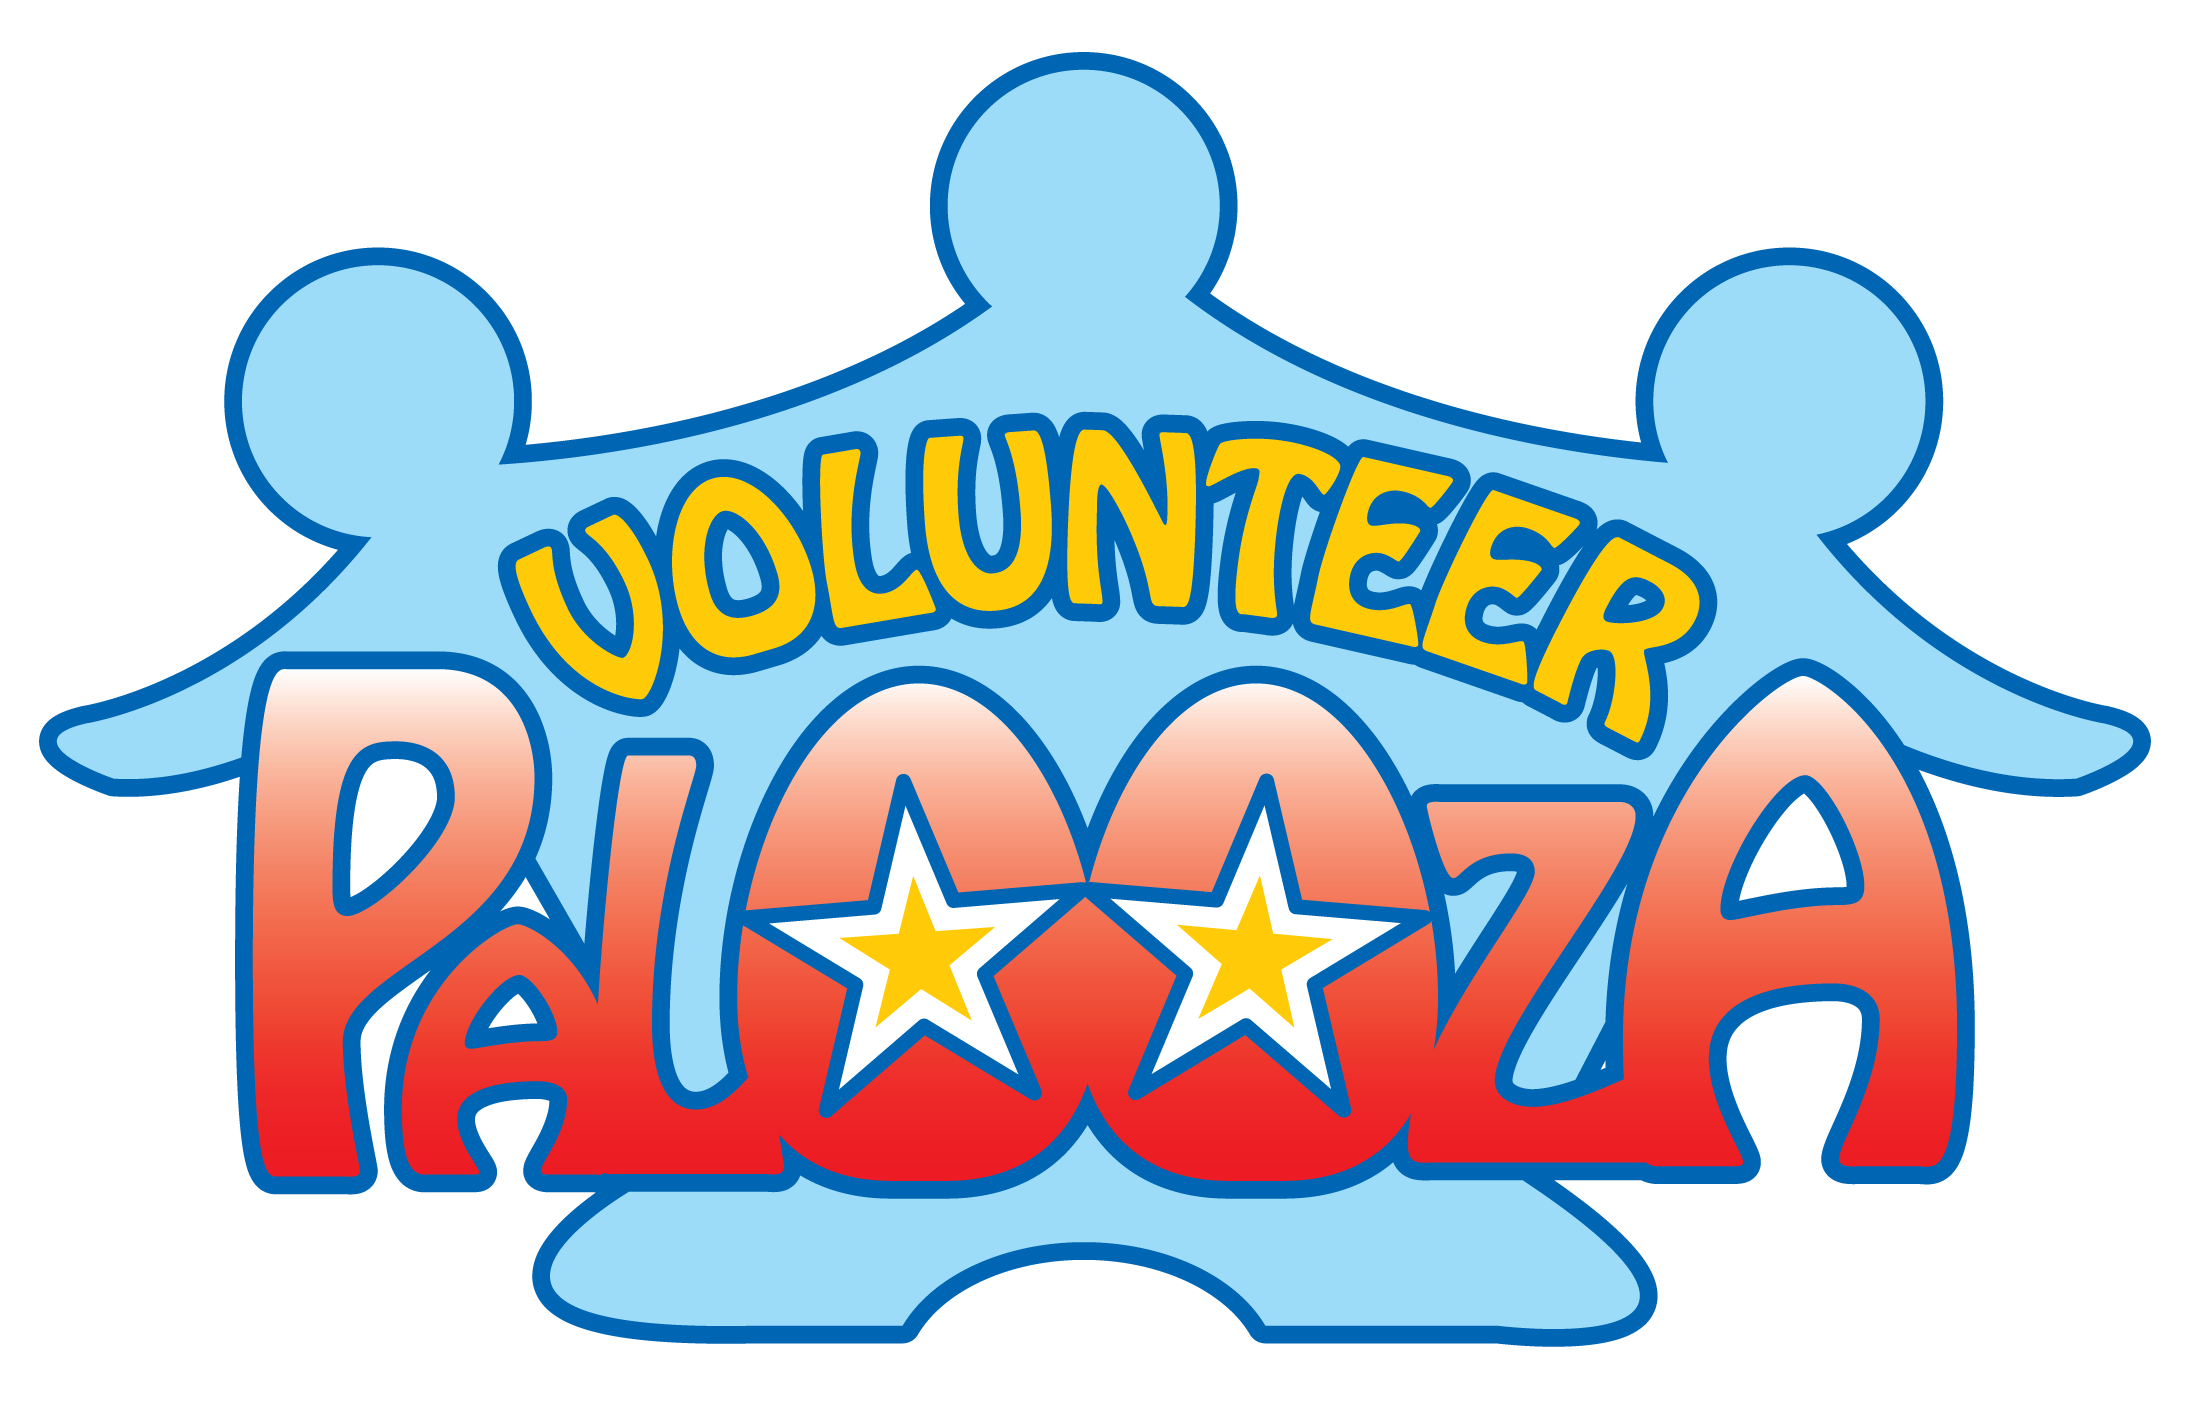 Volunteerpalooza